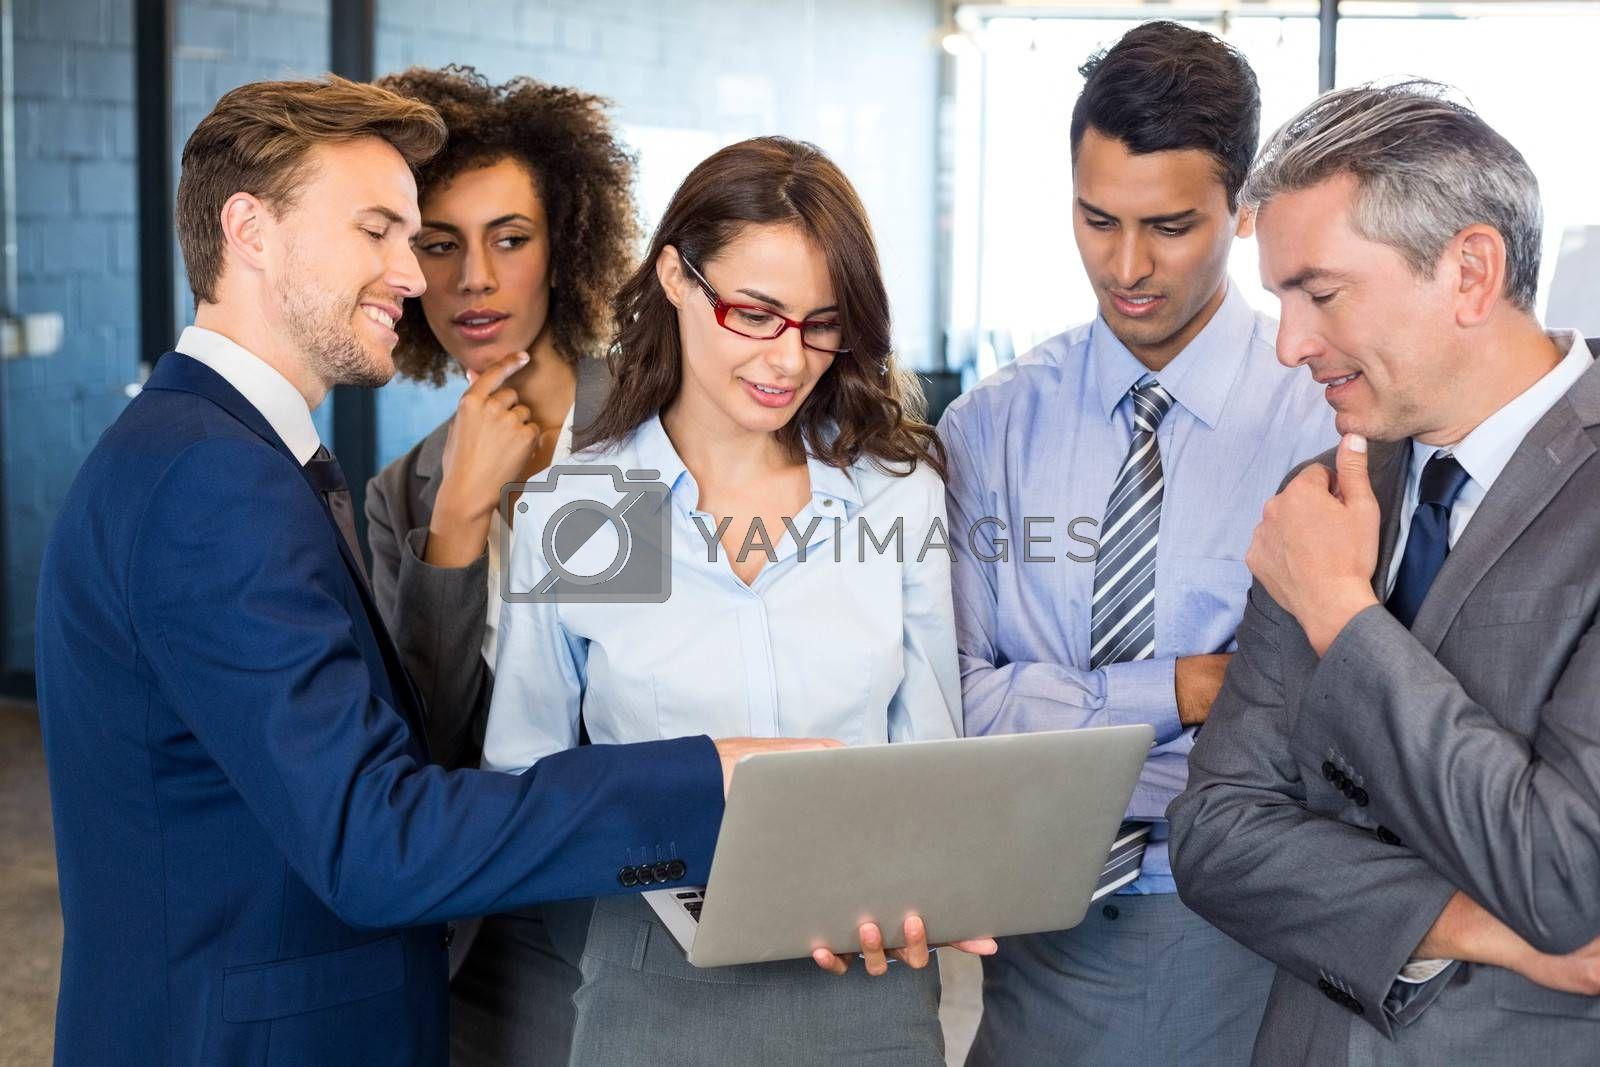 Business team standing together and interacting in office